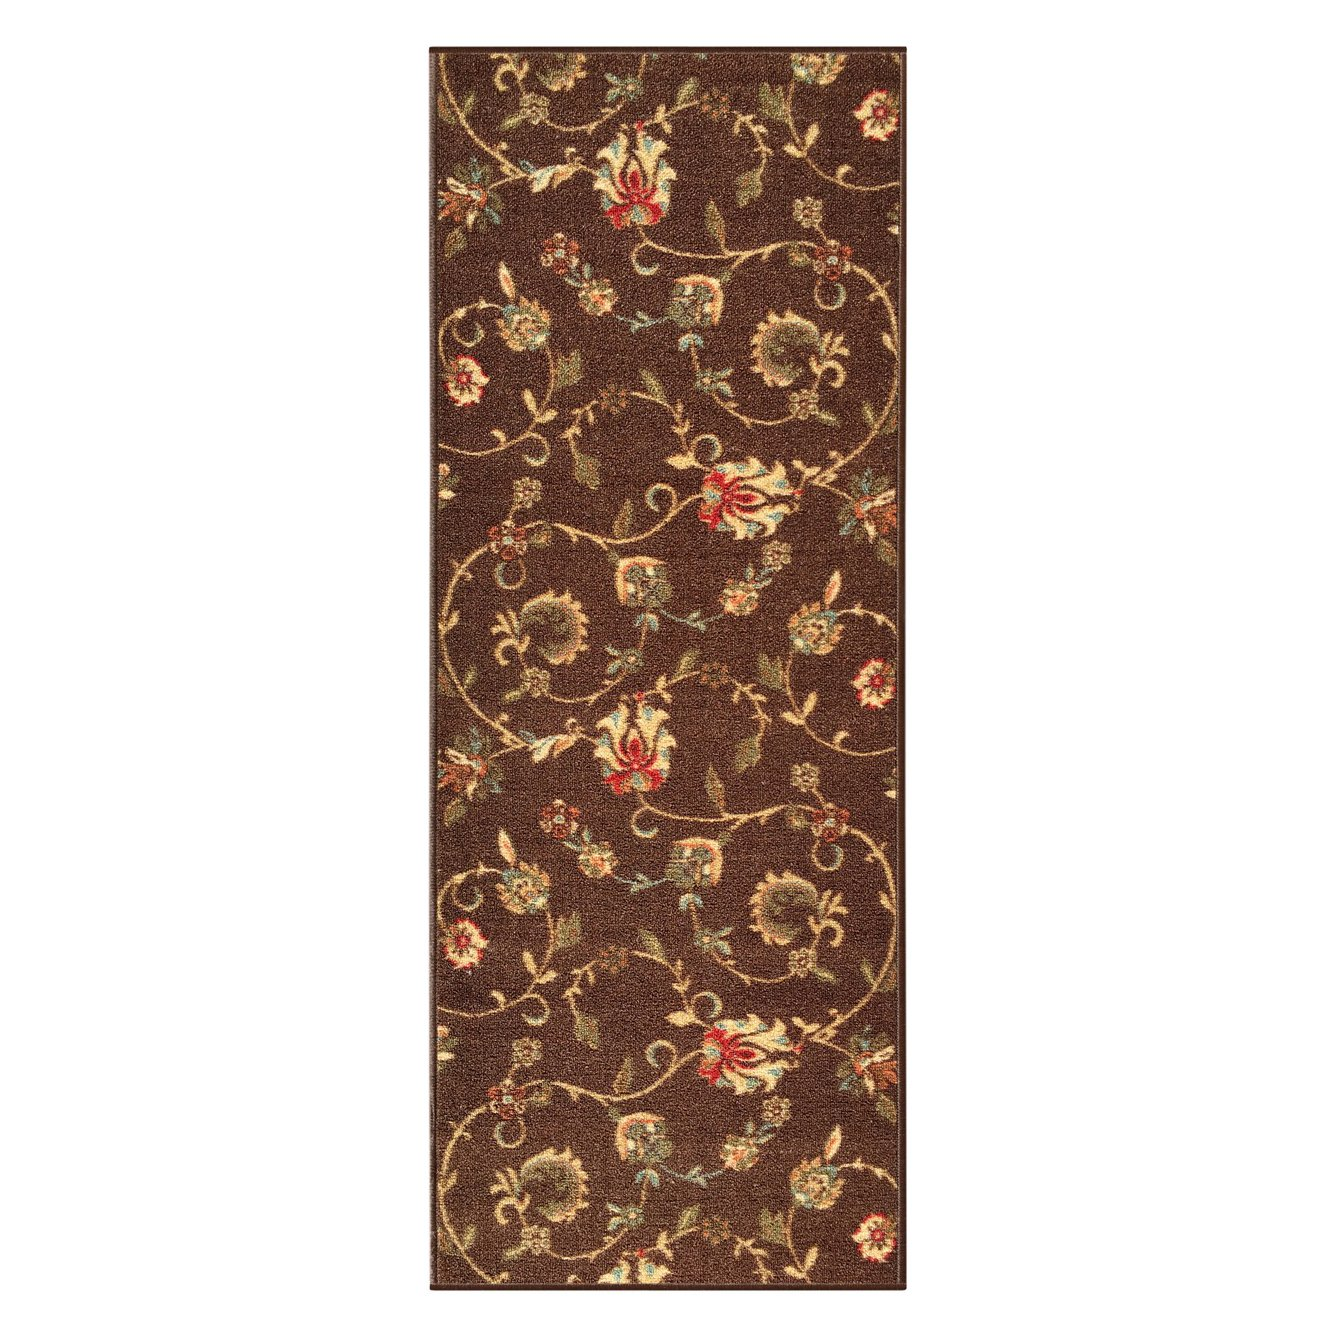 Kapaqua Custom Size Brown Floral Rubber Backed Non-Slip Hallway Stair Runner Rug Carpet 22 inch Wide Choose Your Length 22in X 21ft